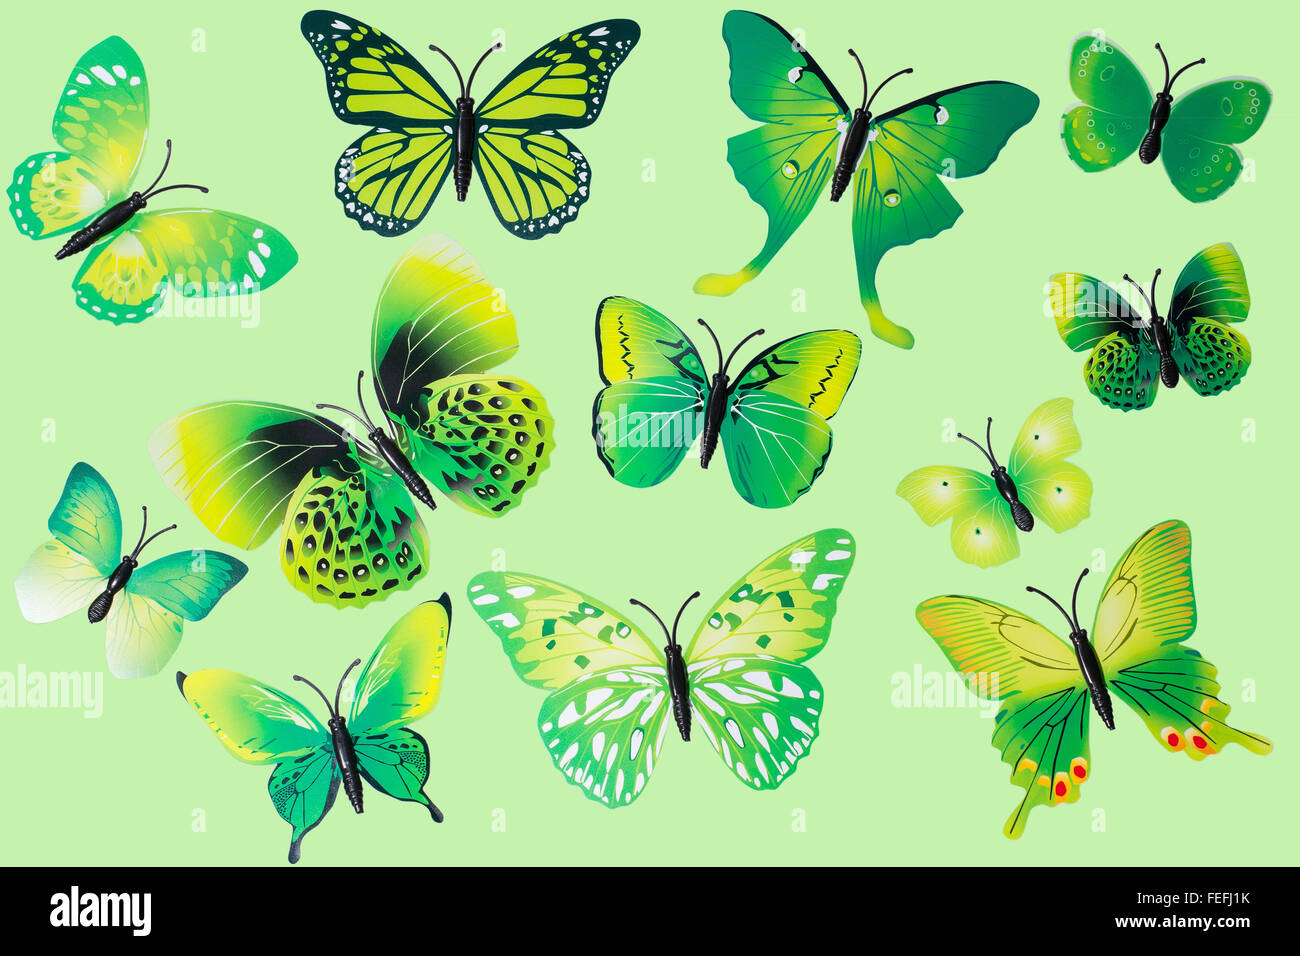 Collection of Green Fantasy Butterflies Clip Art Isolated - Stock Image